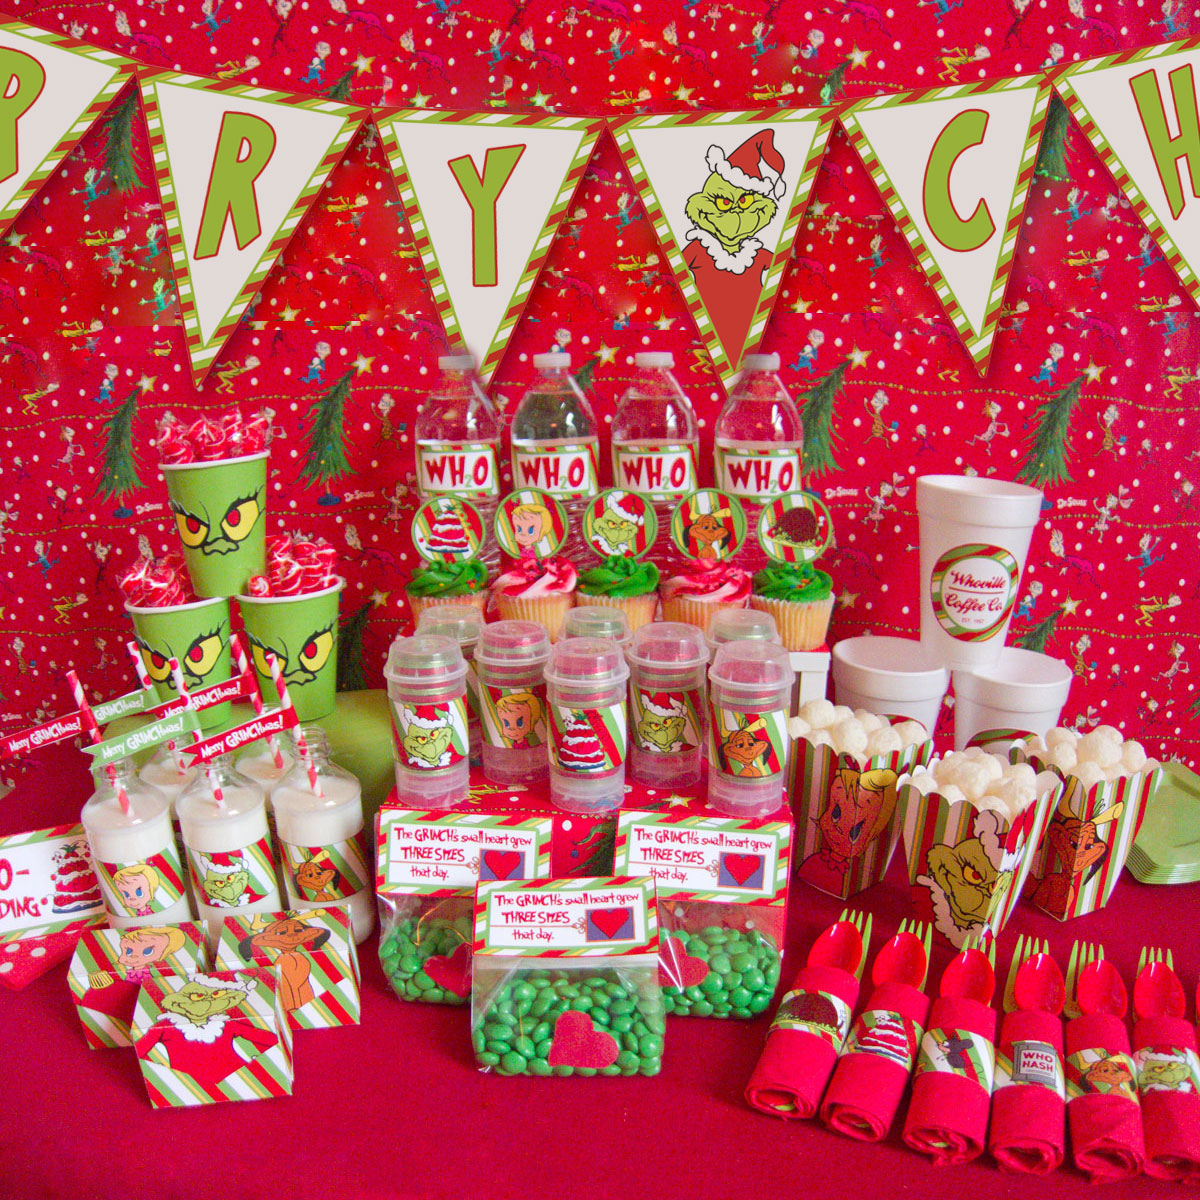 Christmas Party Ideas For School Part - 39: Christmas Party Decoration Ideas In School : Grinch Christmas Party Ideas  Chica And Jo